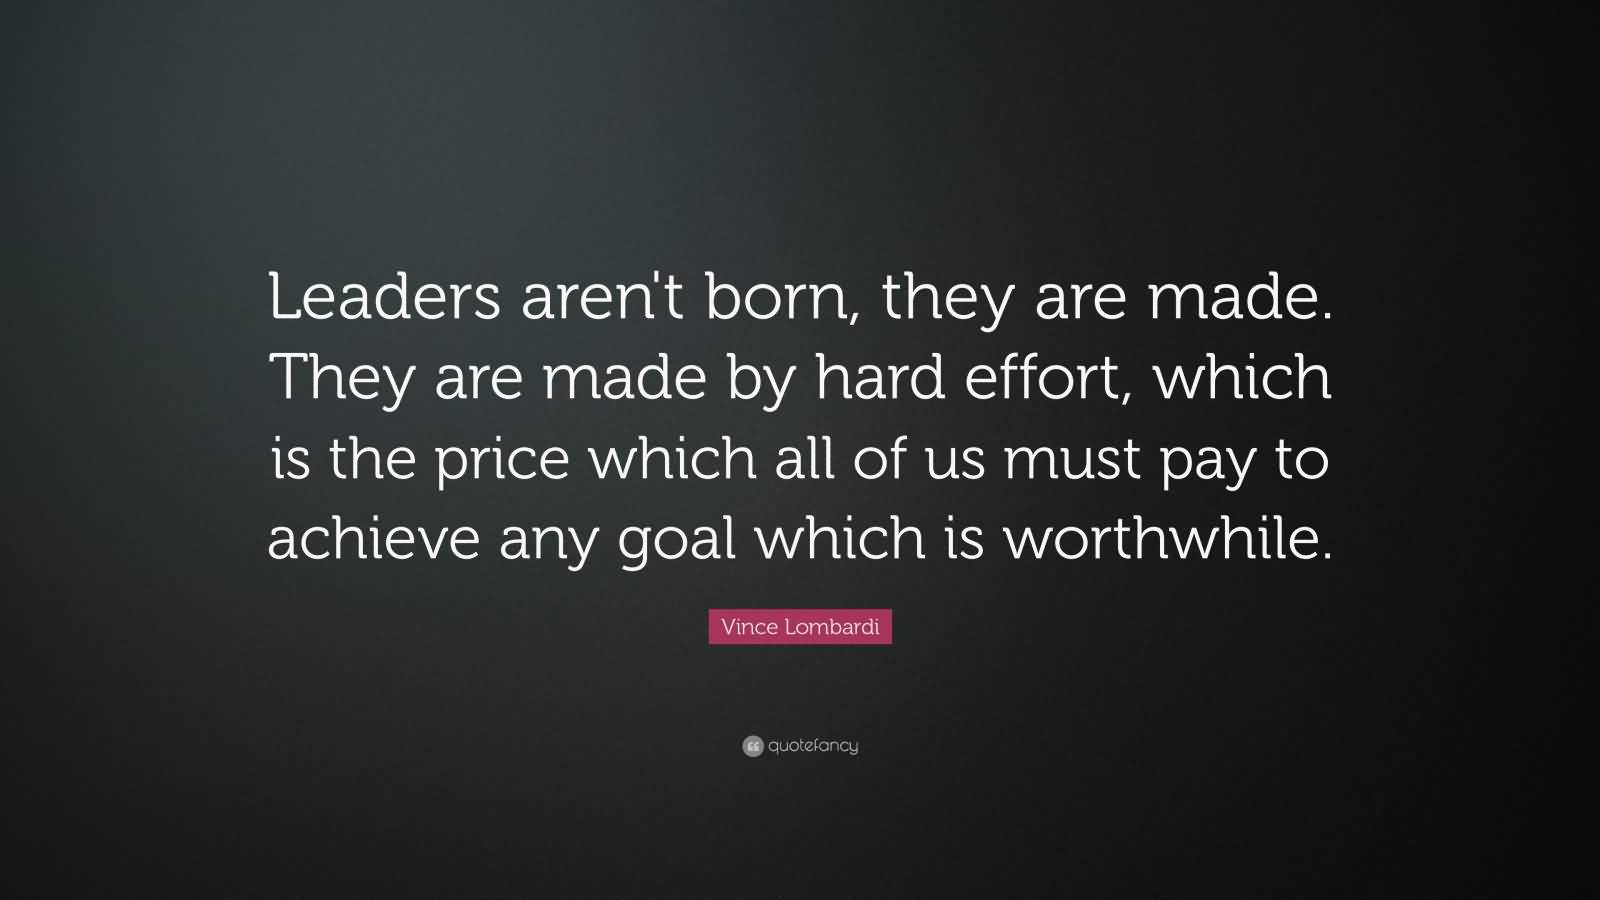 Leaders are made, they are not born. They are made by hard effort, which is the price all of us must pay to achieve any